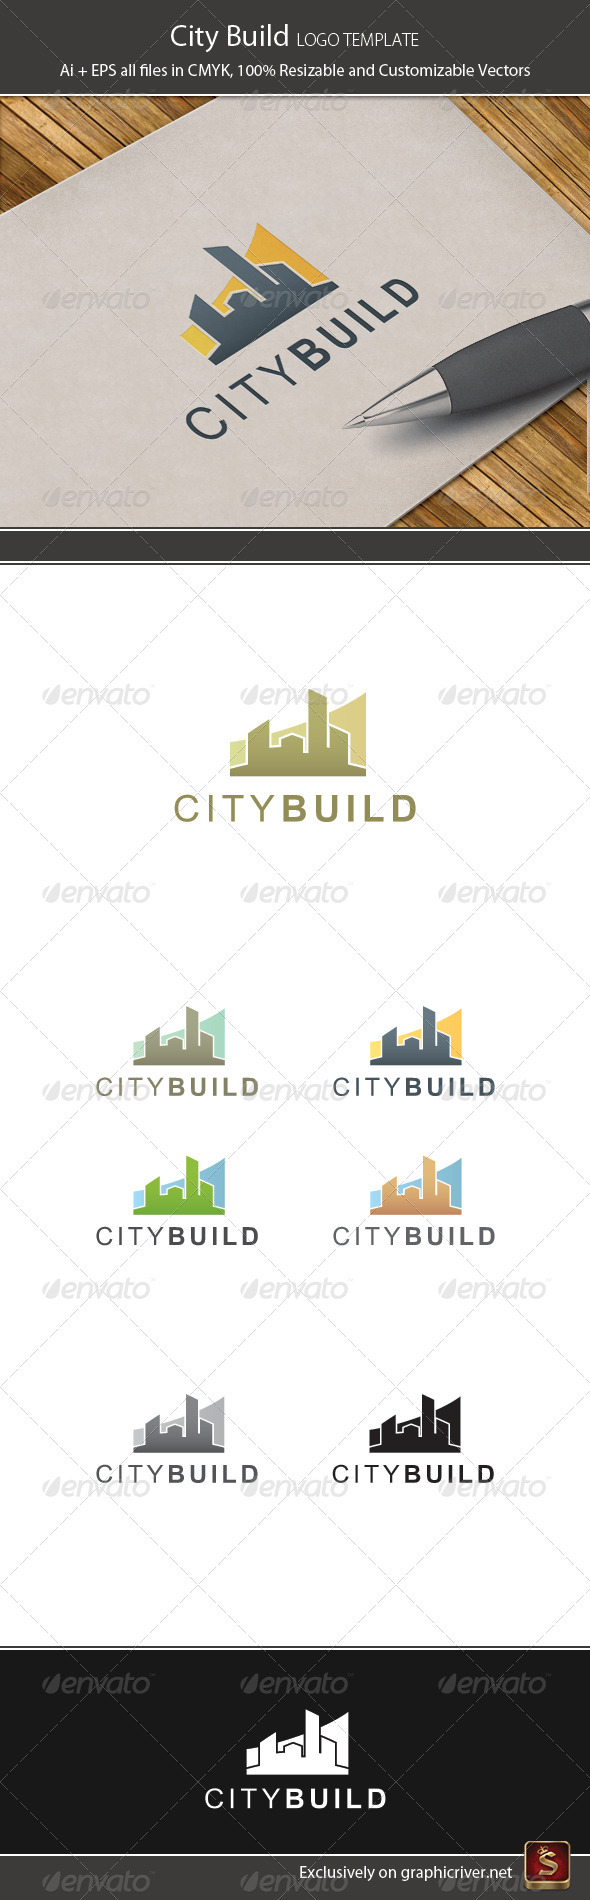 City Build Logo Temlate - Buildings Logo Templates